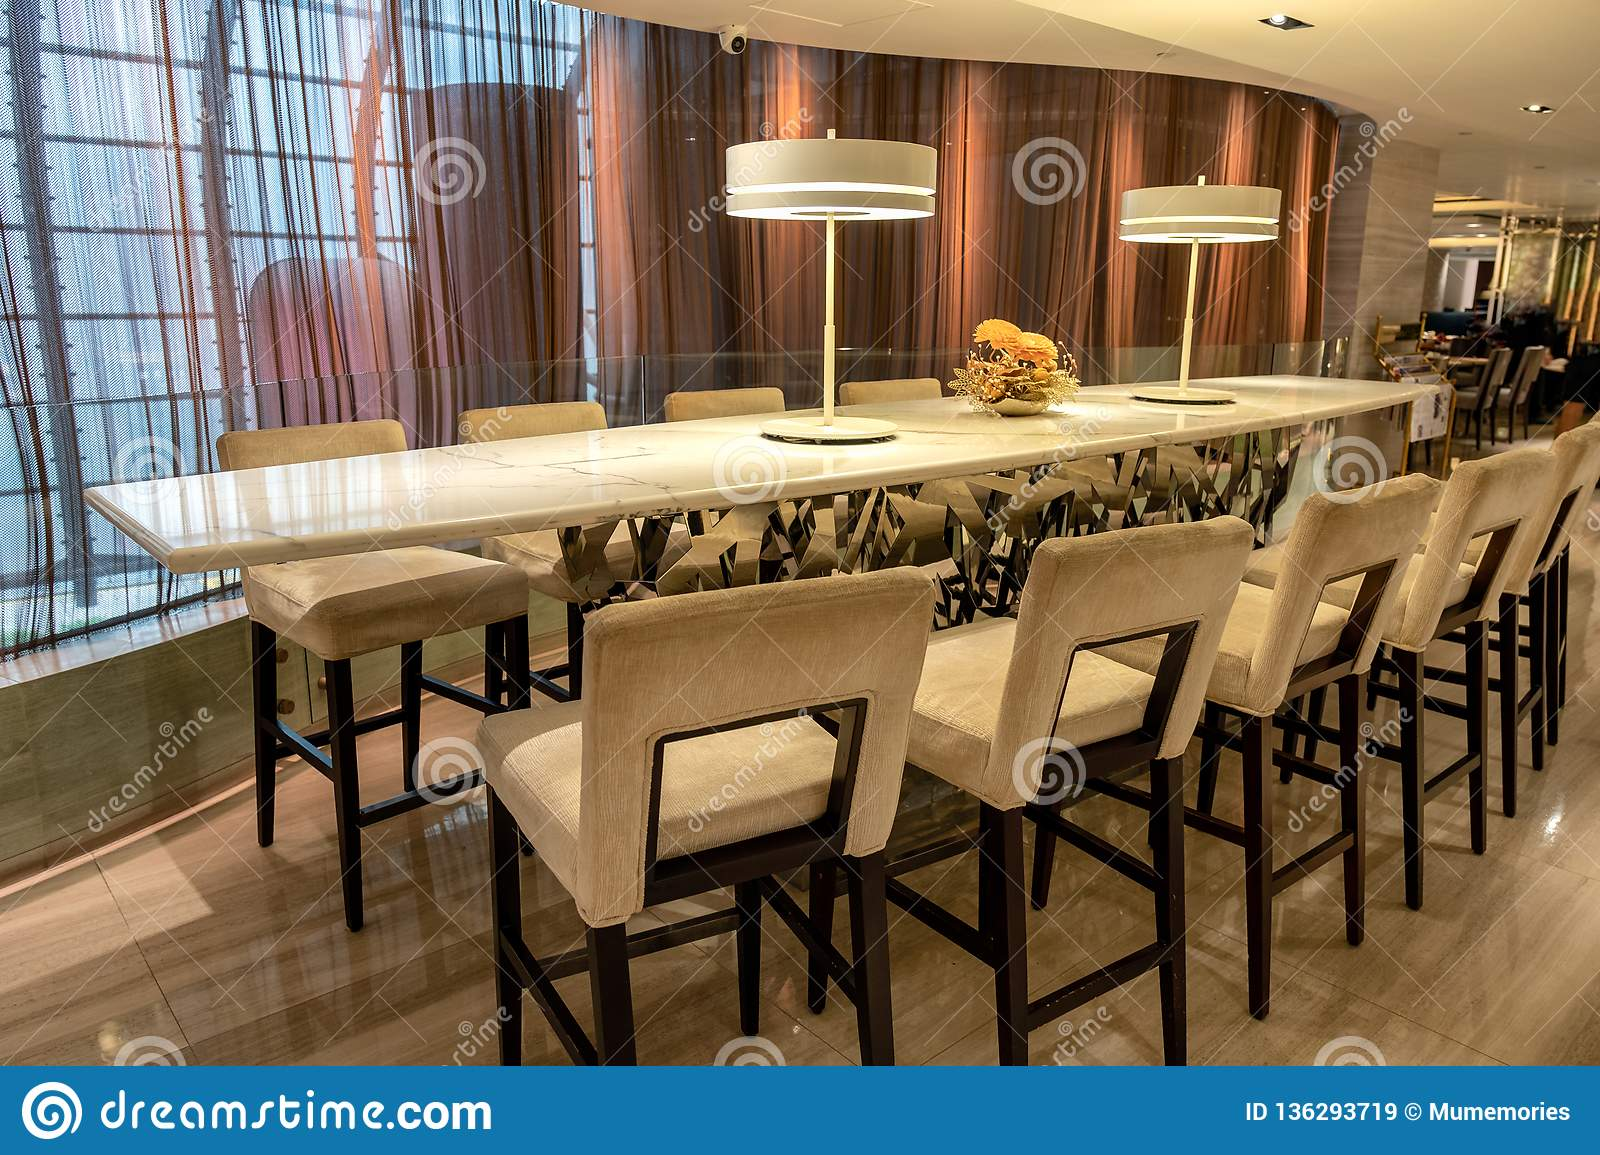 Marble Dining Table With Wooden Chairs In Restaurant Stock Image Image Of Interior Drink 136293719